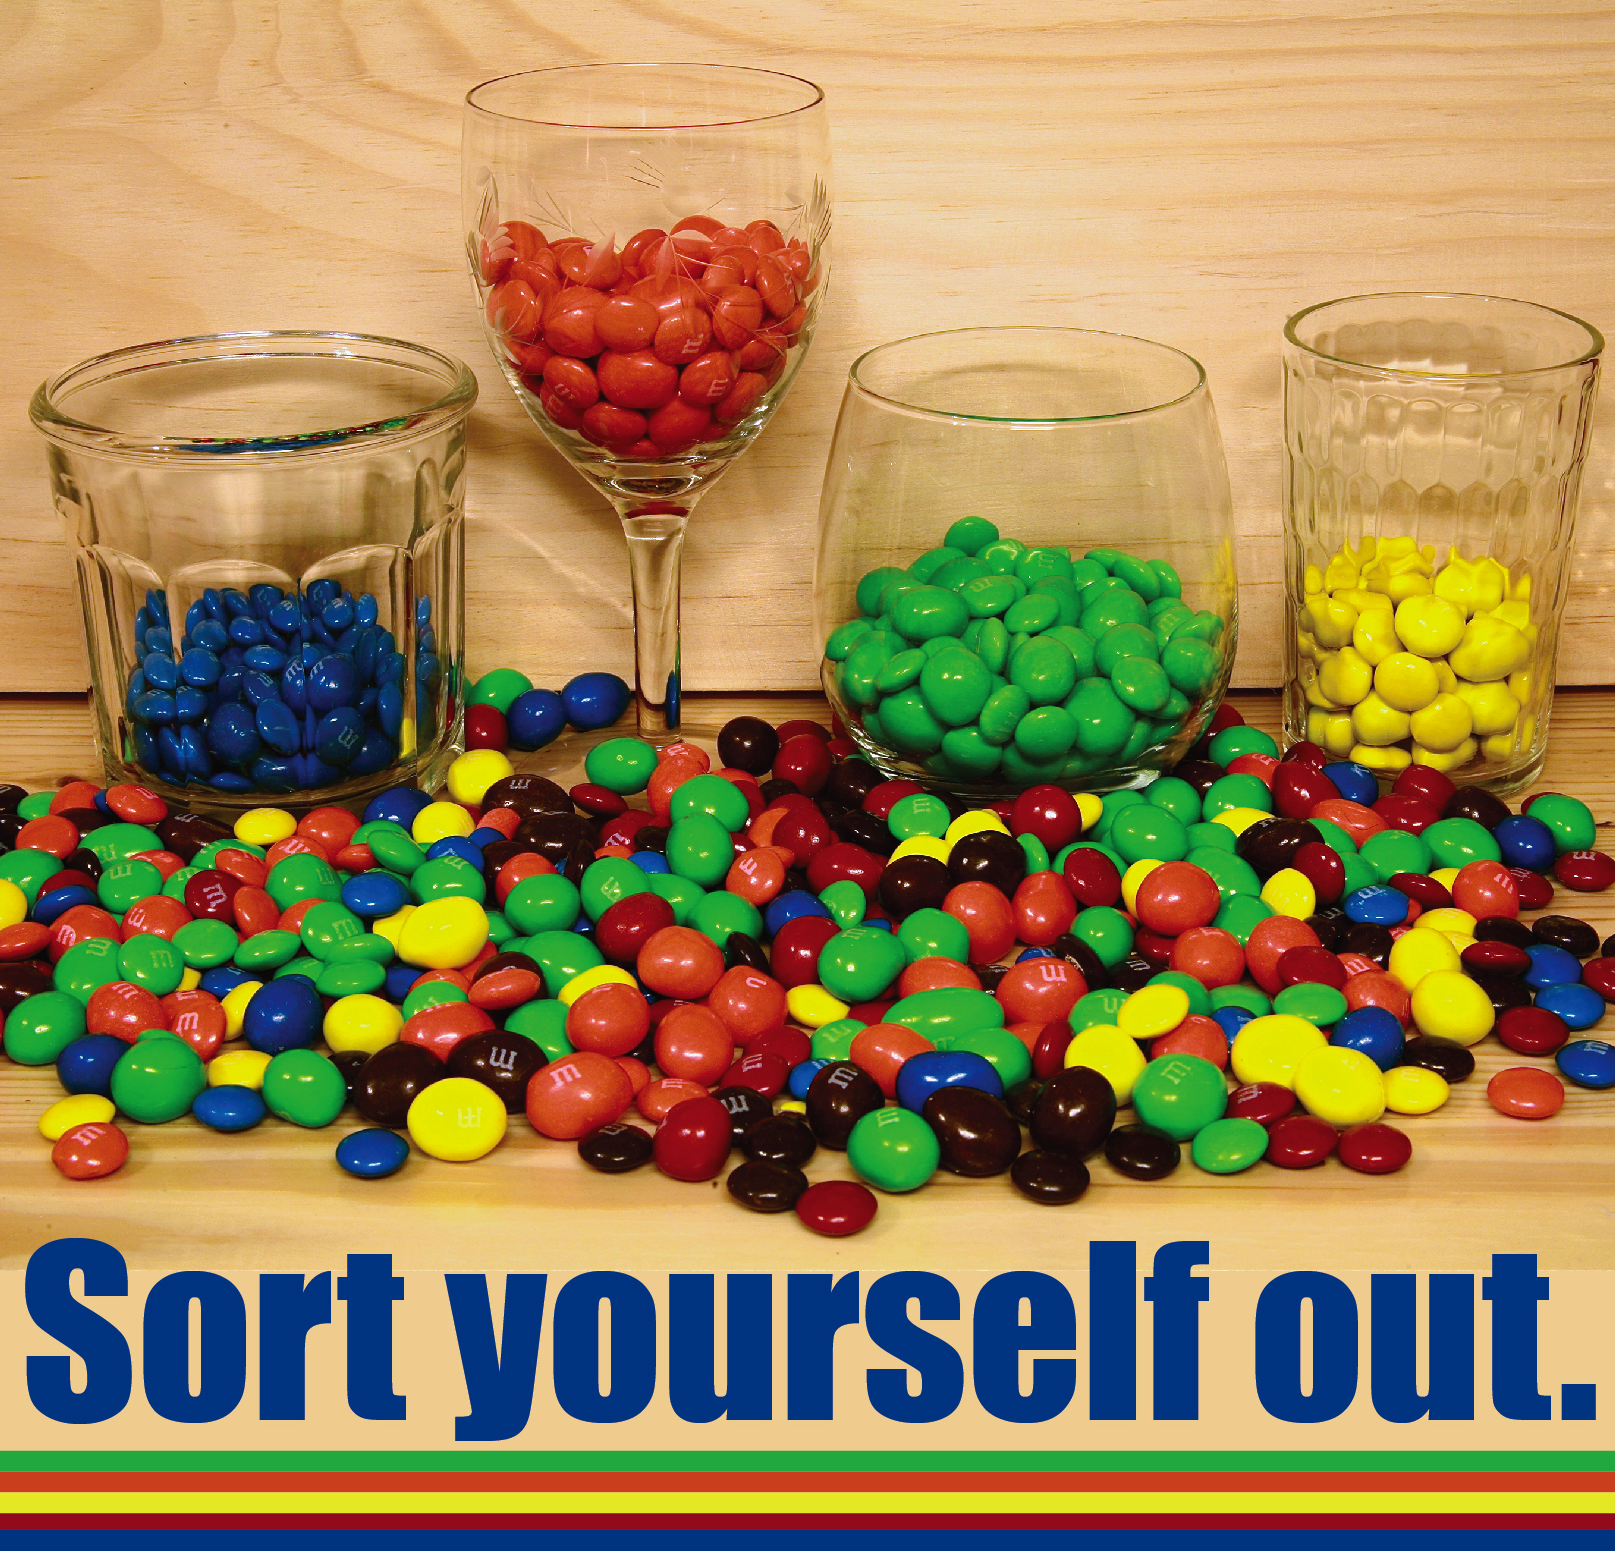 Photographs of different colored M&Ms sorted into glasses